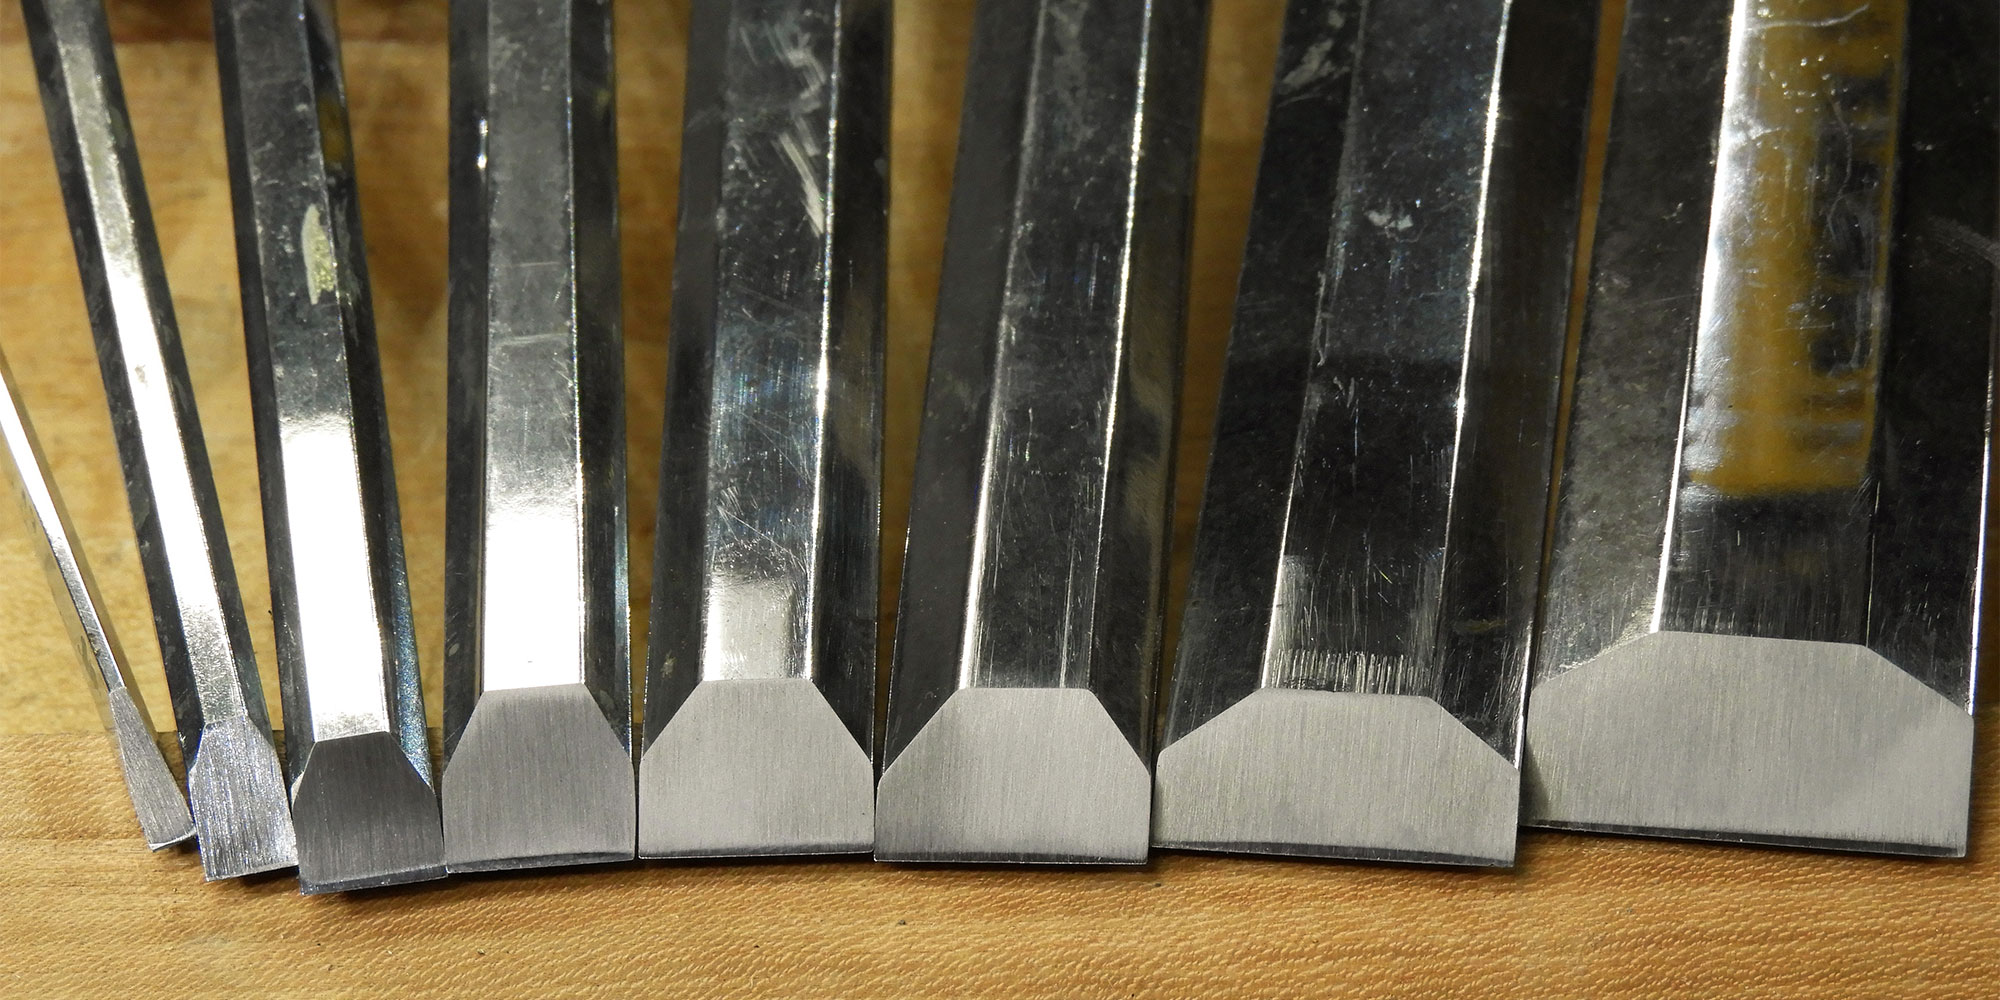 The set of chisels after their final honing.